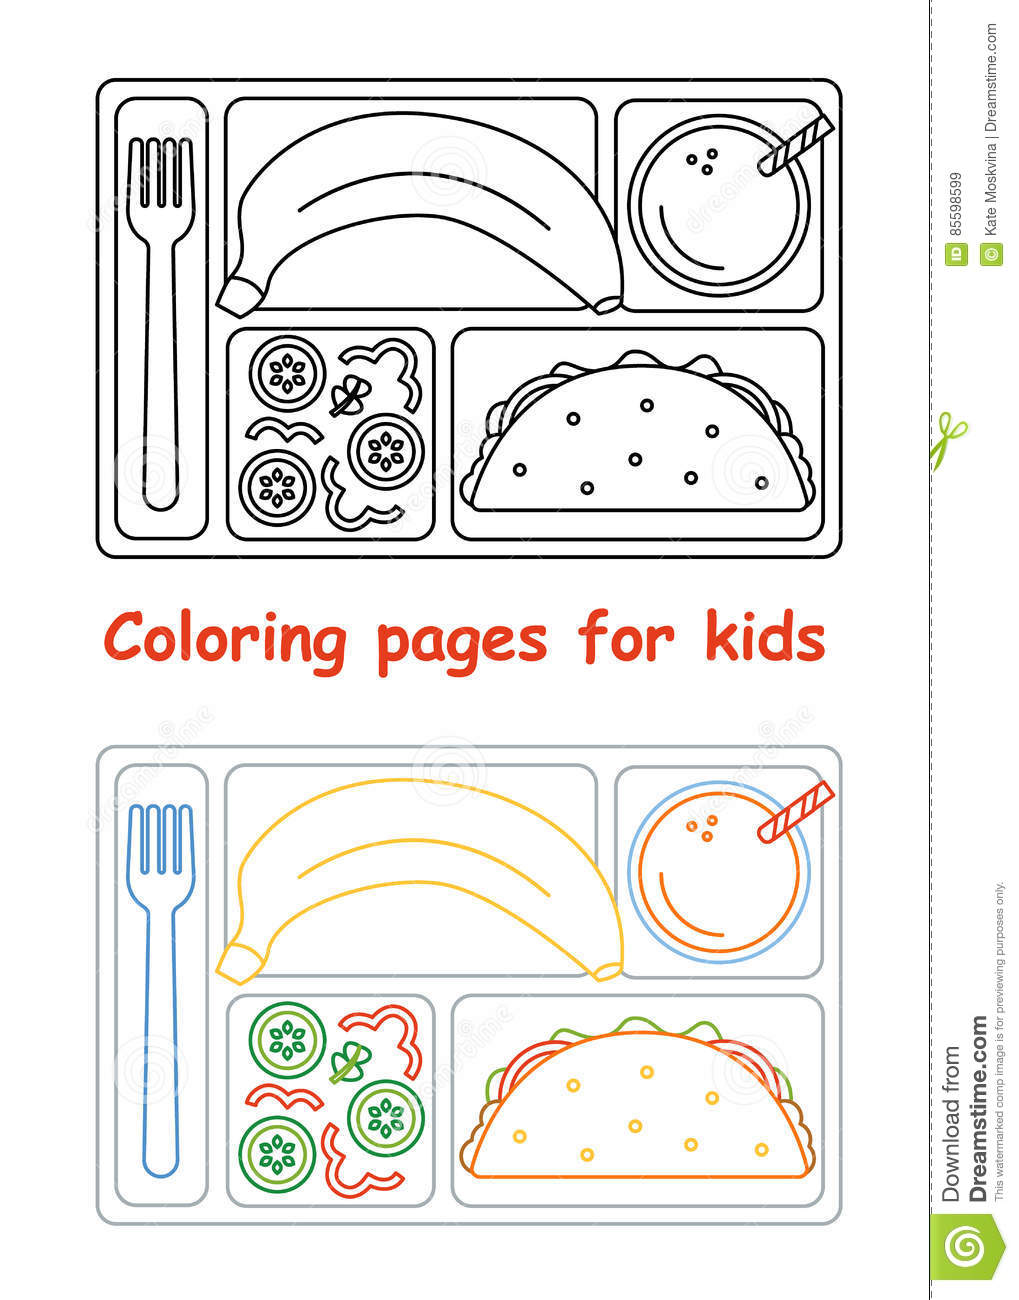 Coloring Pages For Kids With Lunch Tray Stock Vector Illustration Of Menu Juice 85598599